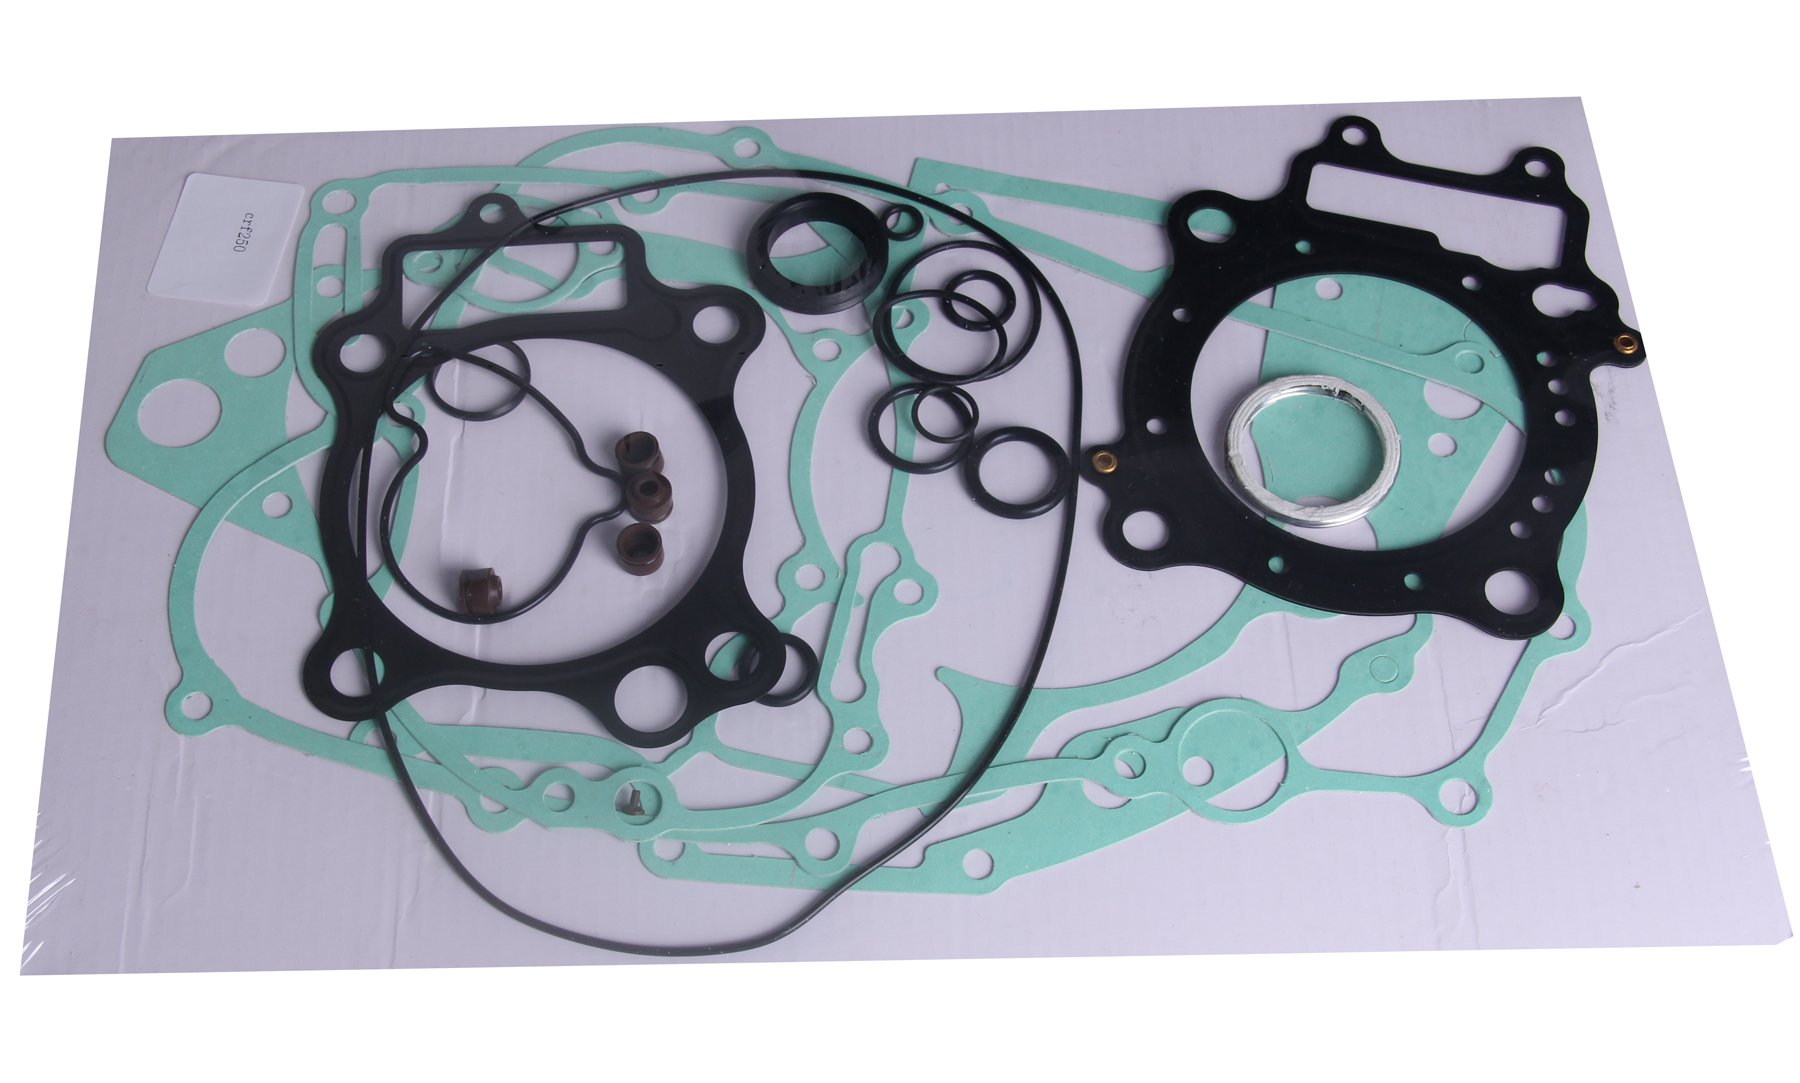 New COMPLETE FULL GASKET KIT For HONDA CRF250R CRF250X CRF250 CRF 250 X I GS26